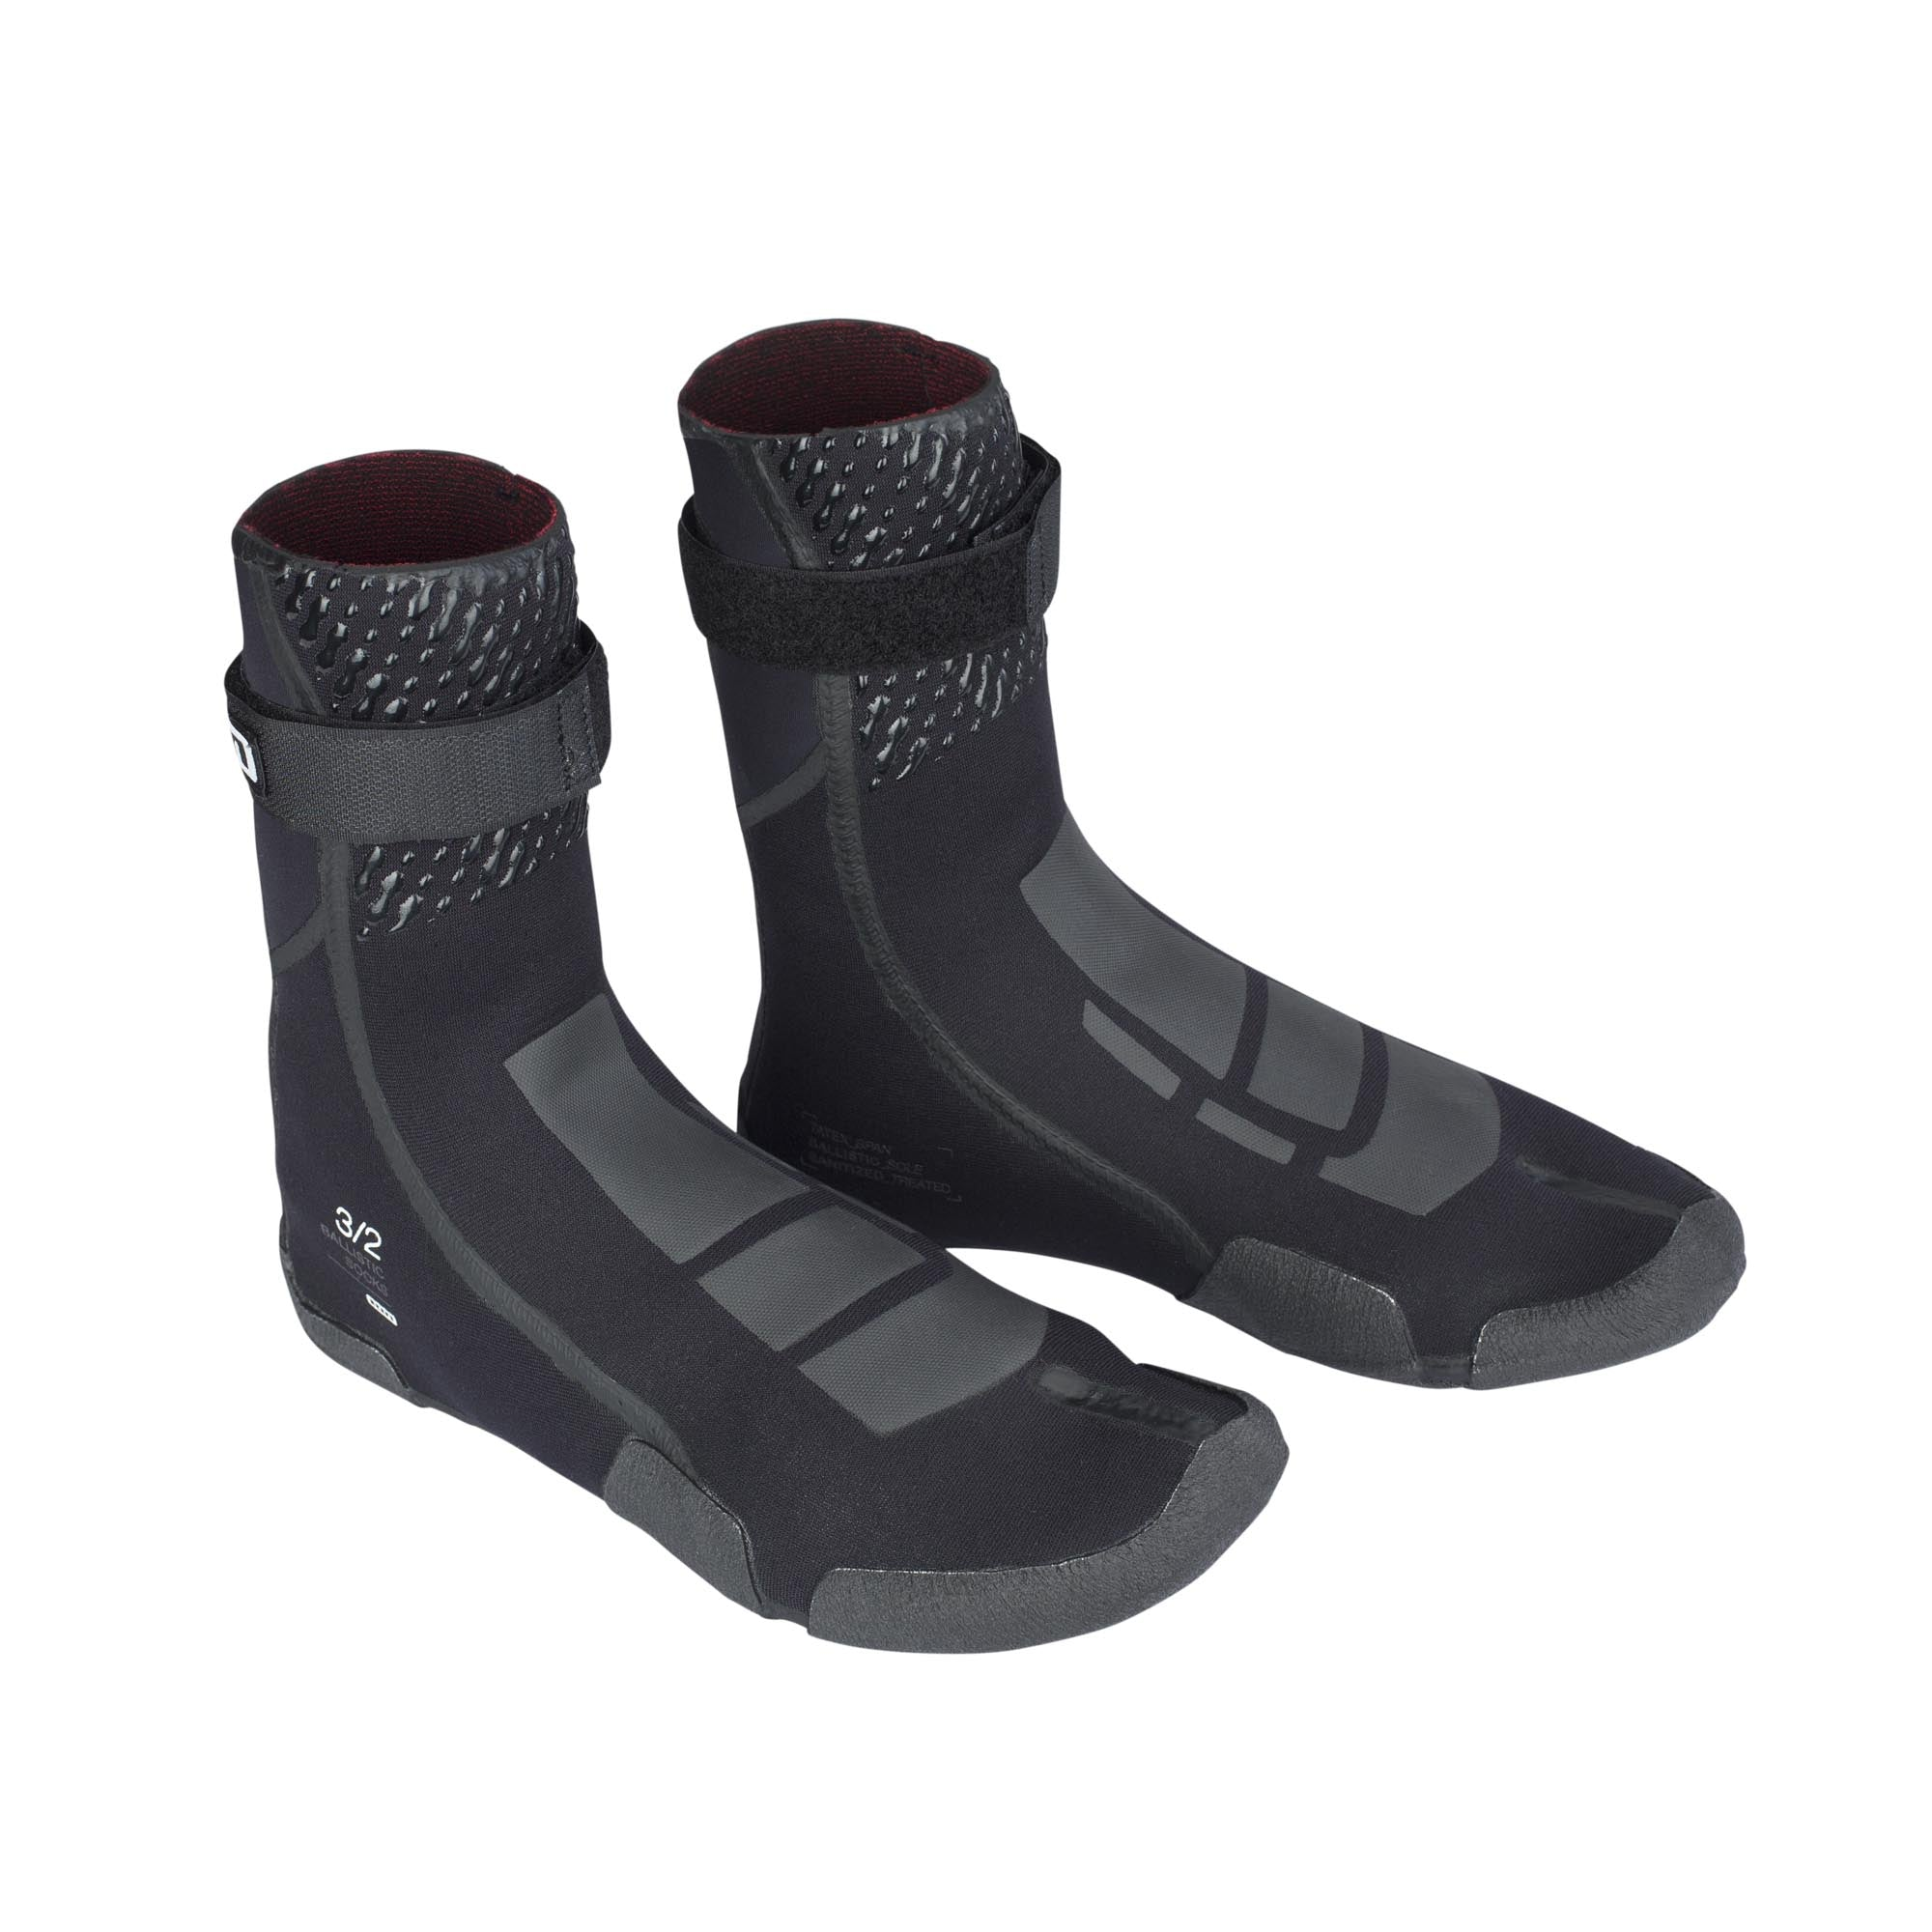 BALLISTIC SOCKS 3/2 BLACK